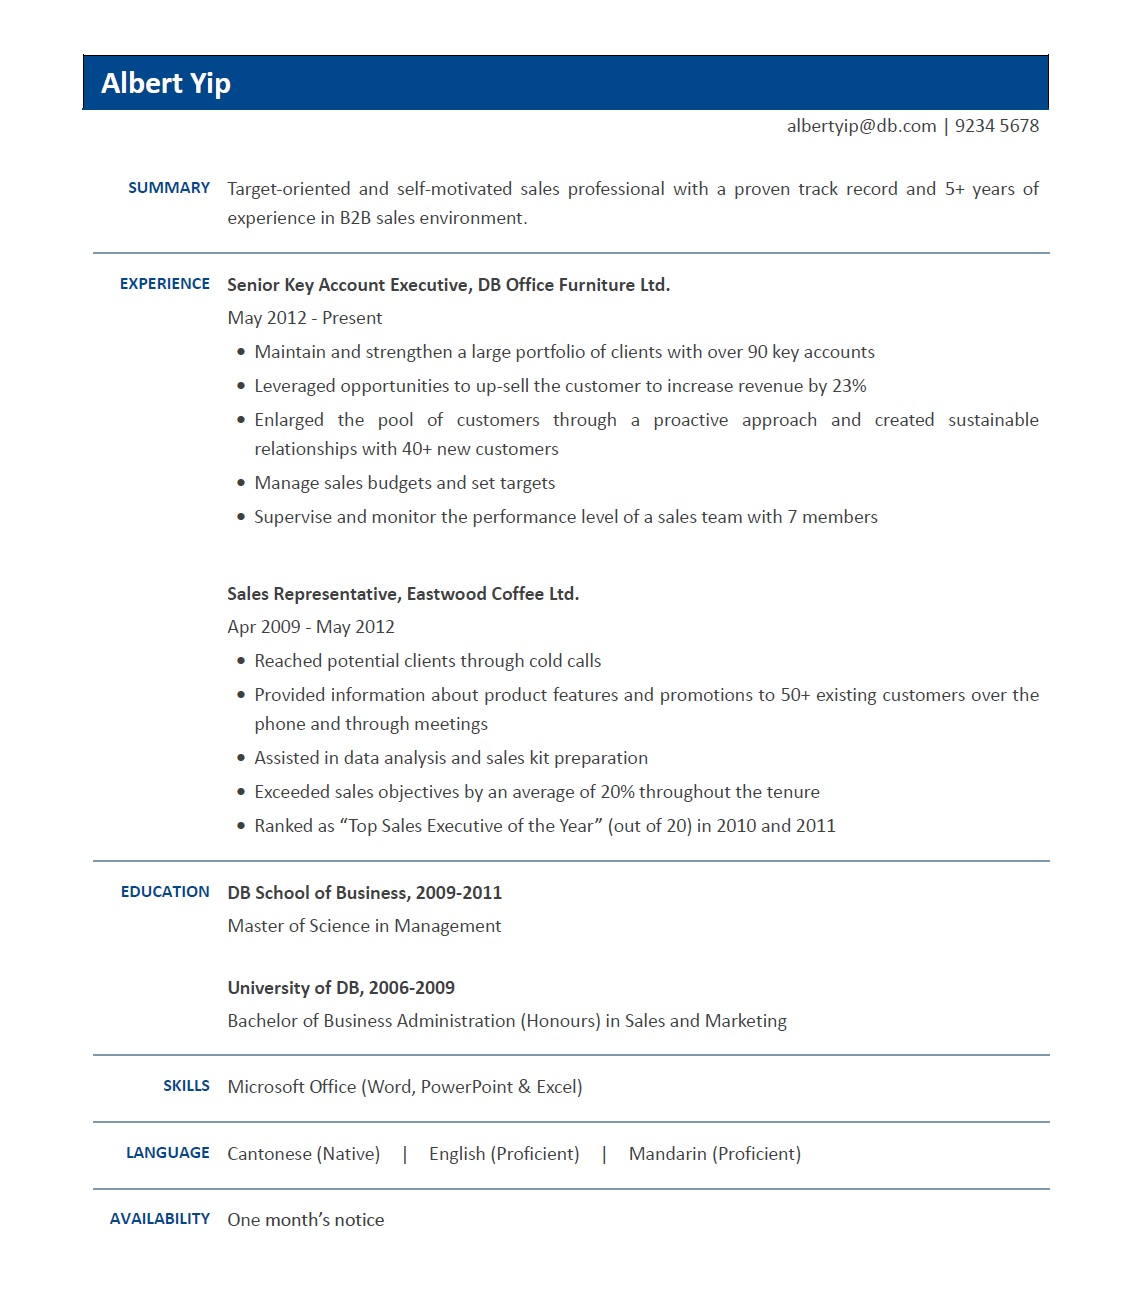 Sample Resume (Sales) | jobsDB Hong Kong